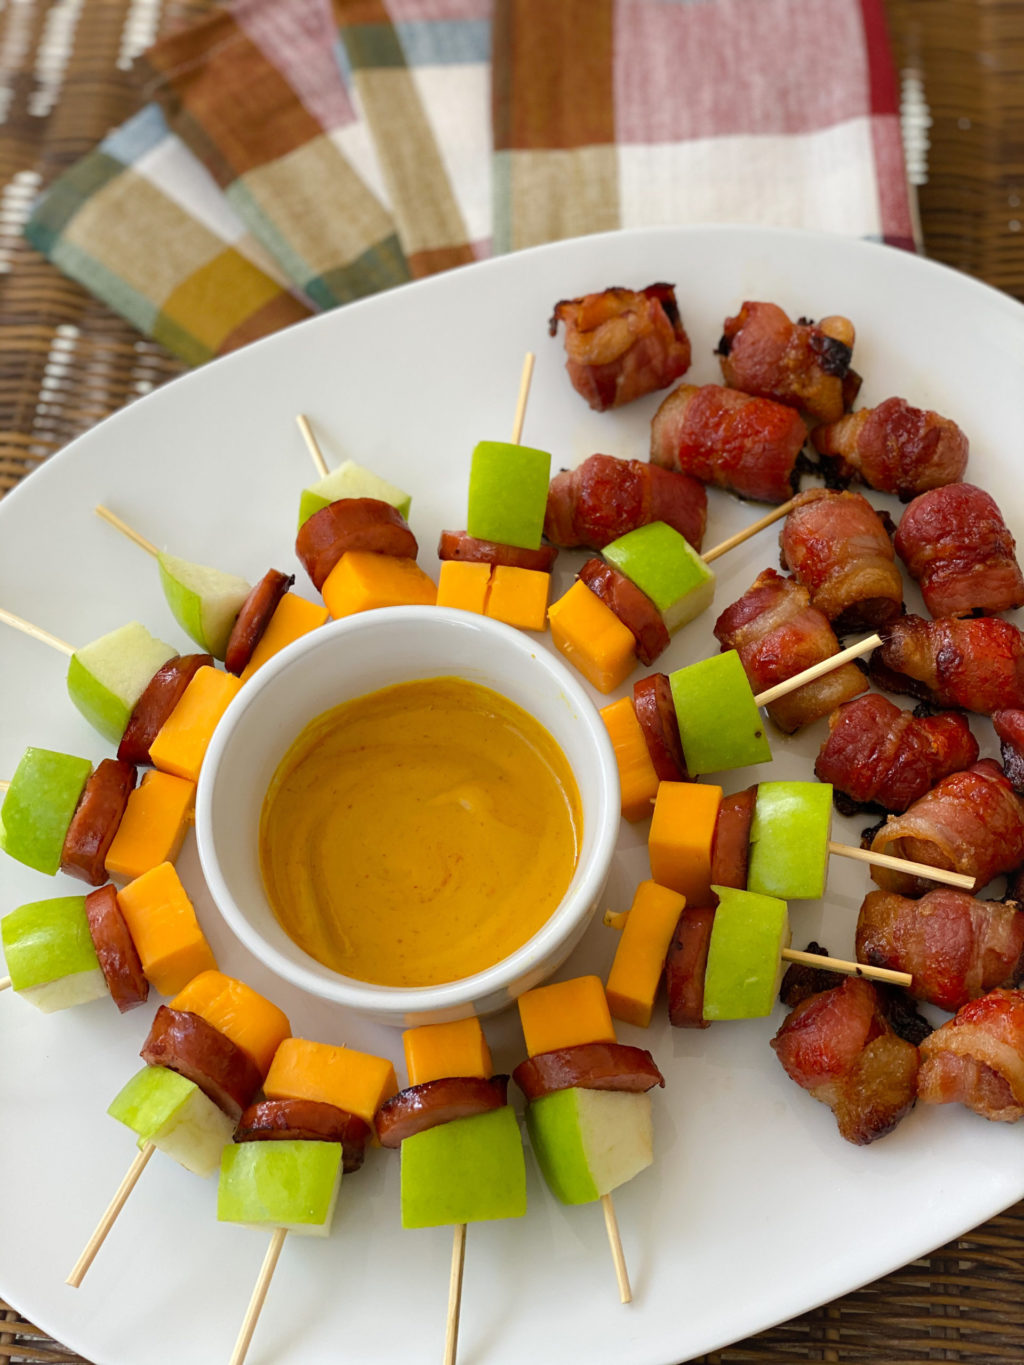 sausage and hot dog appetizers on white plate and plaid placemats